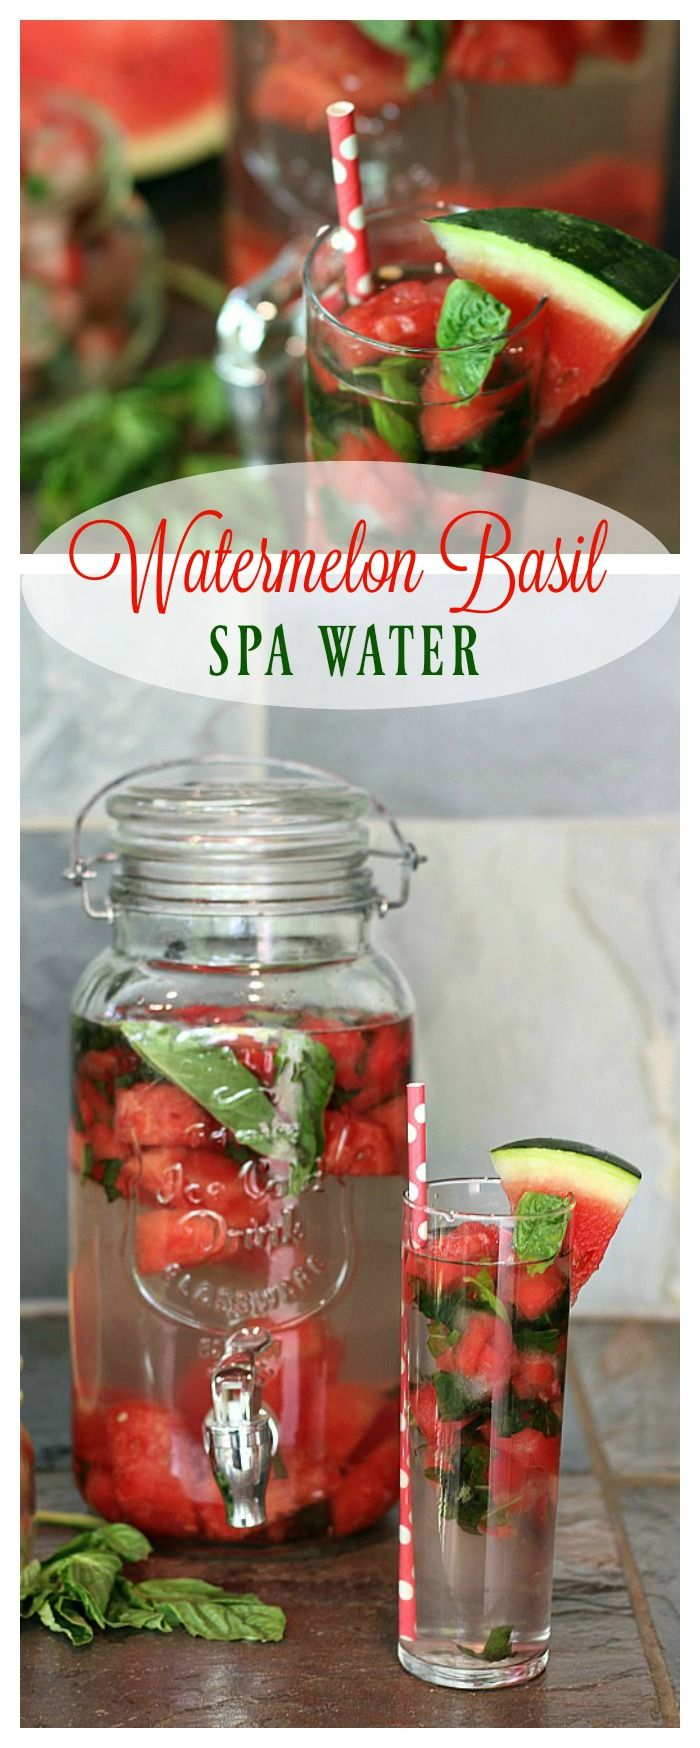 Meet all your hydration goals with this easy-to-make Watermelon Basil Spa Water! #PureLife35pk #ad